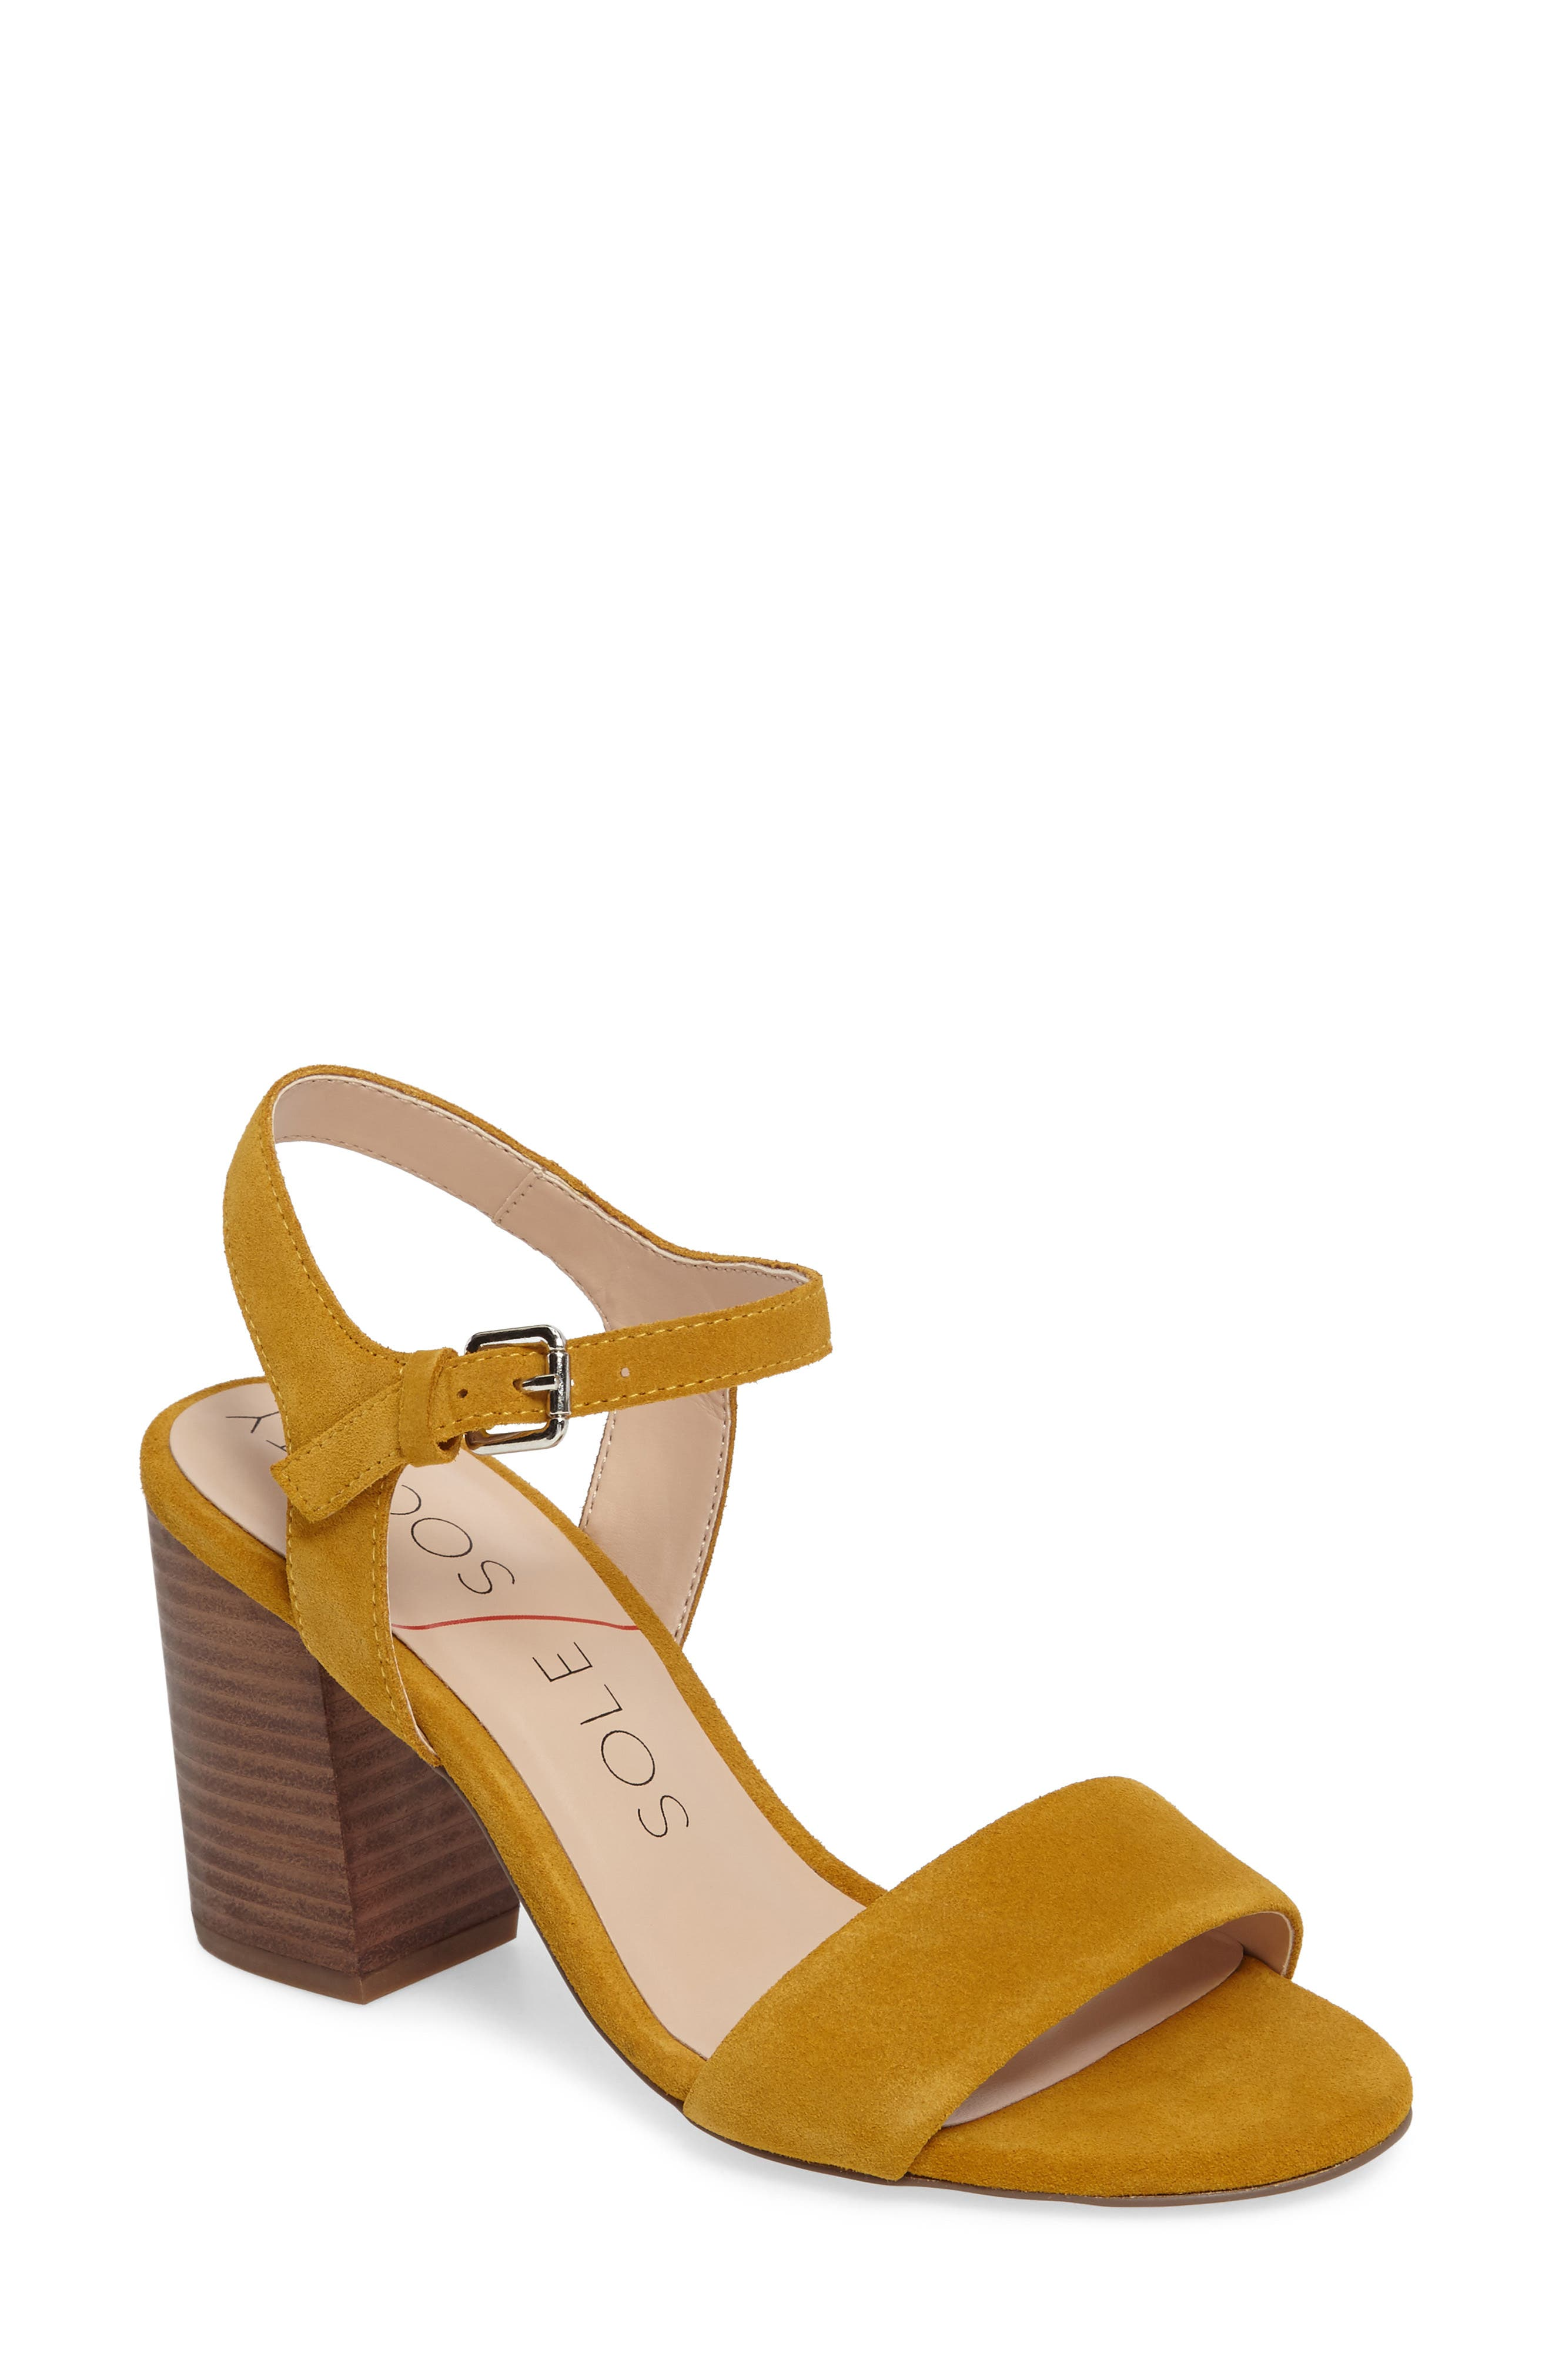 Alternate Image 1 Selected - Sole Society 'Linny' Ankle Strap Sandal (Women)